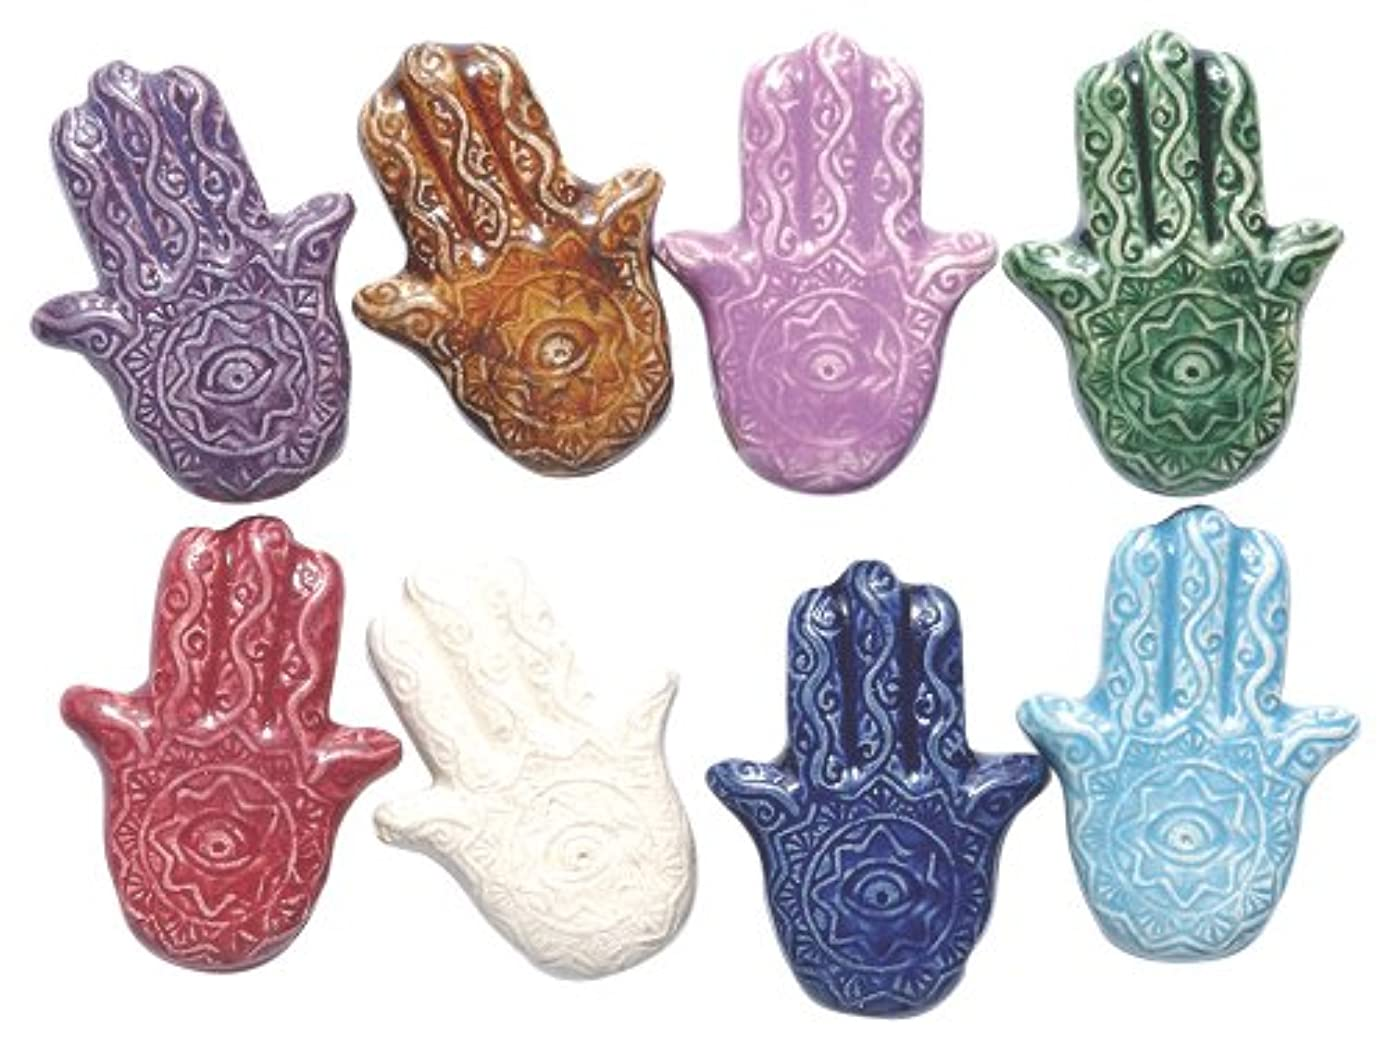 Shipwreck Beads 29mm Peruvian Hand Crafted Ceramic Hamsa Hand Beads, Assorted Color, 10 per Pack